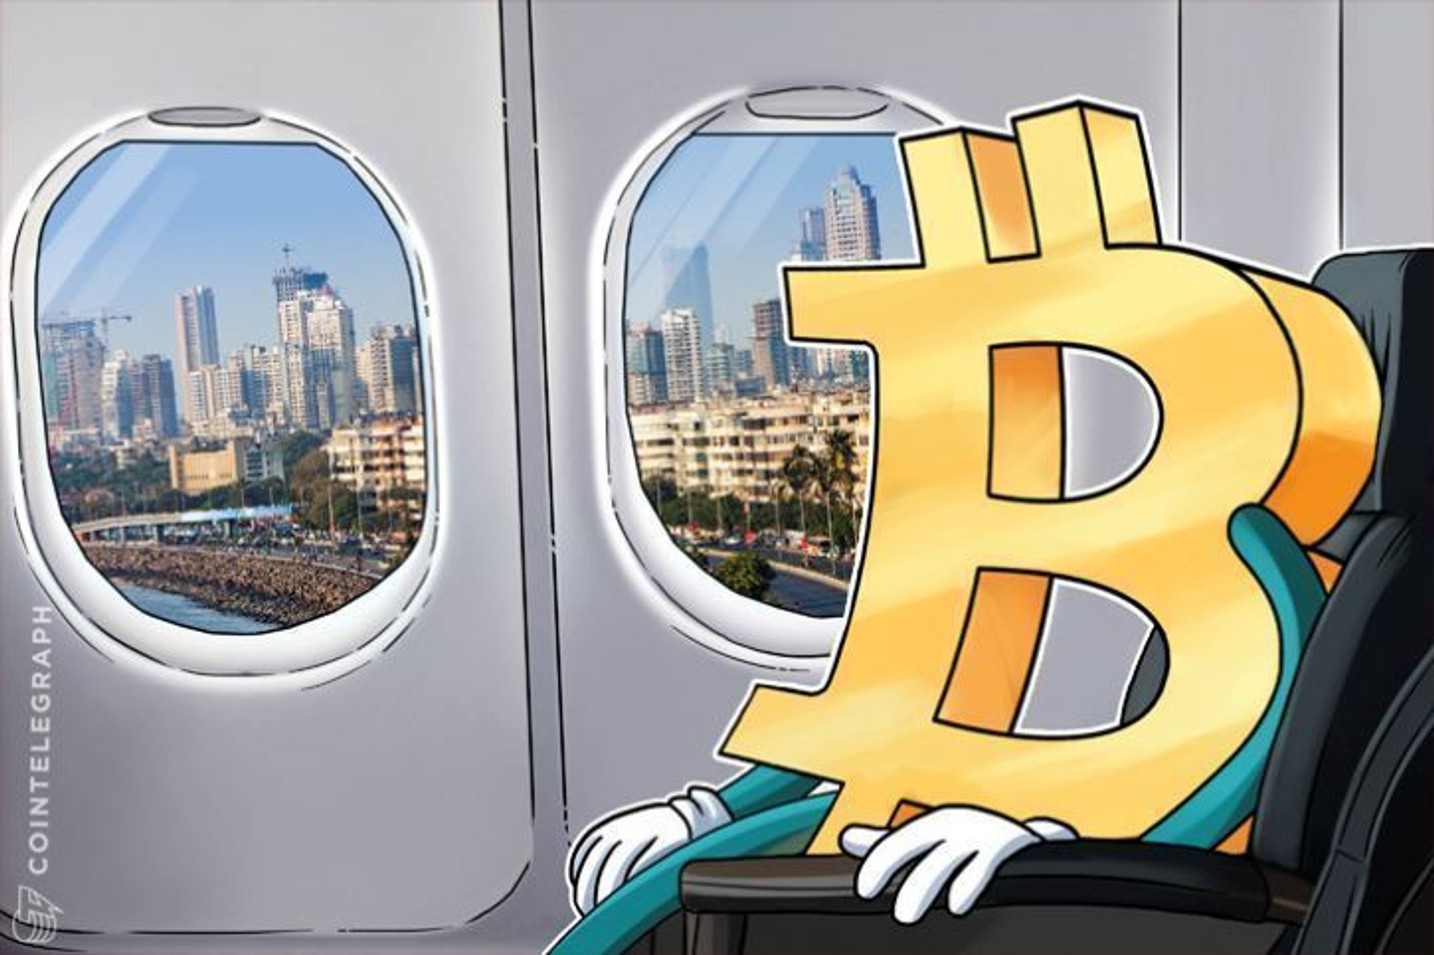 Japanese Airline Confirms Future BTC Payment Option In The Works